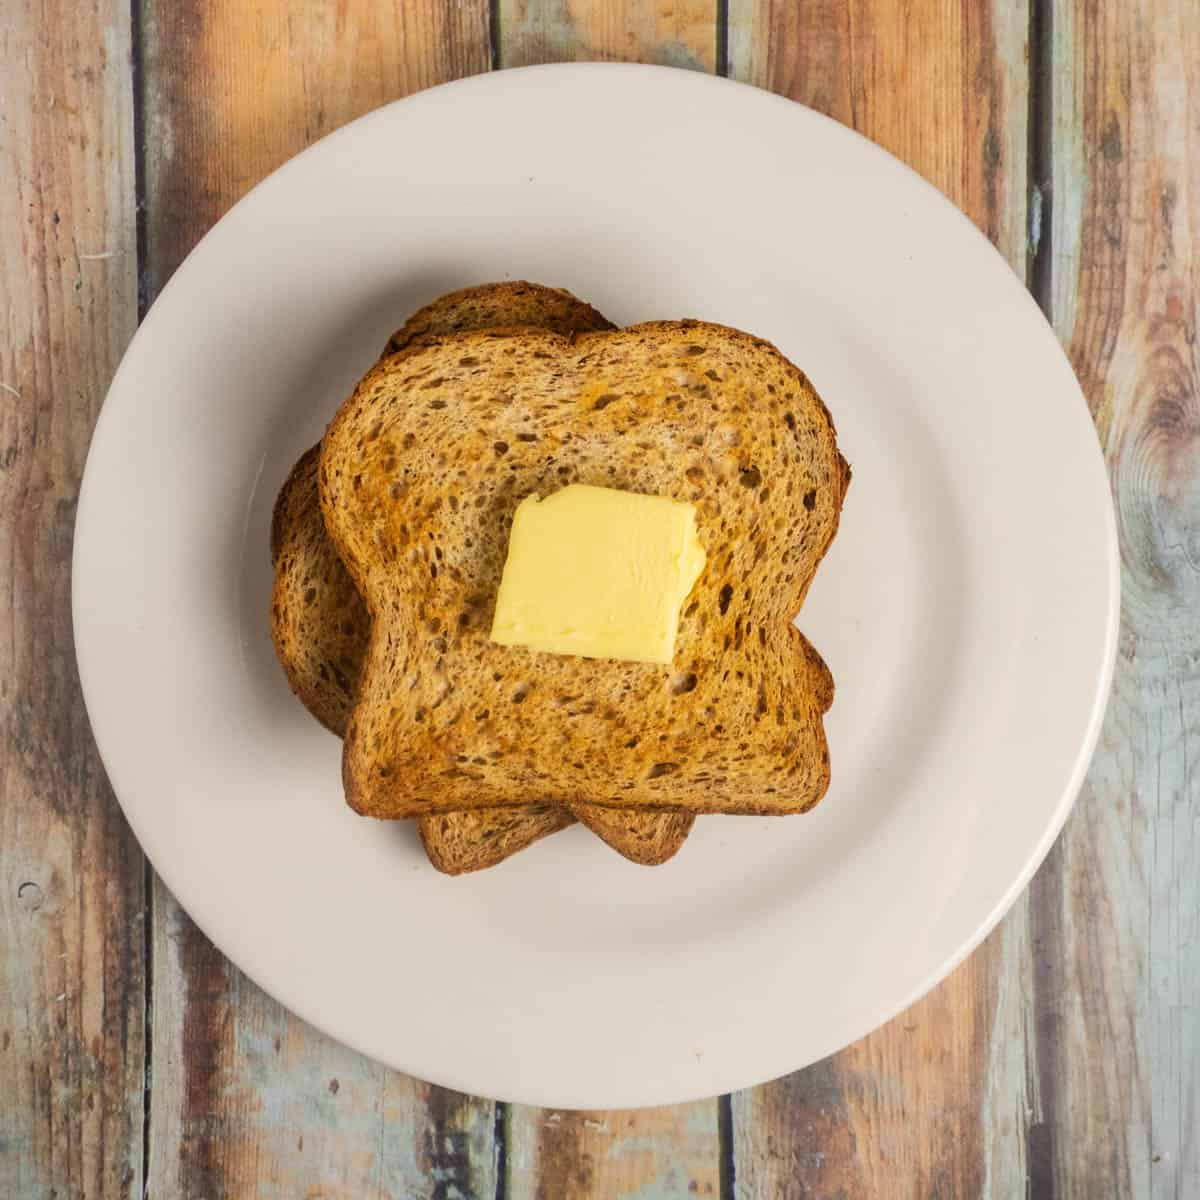 toasted bread above view toasted and golden brown with butter.